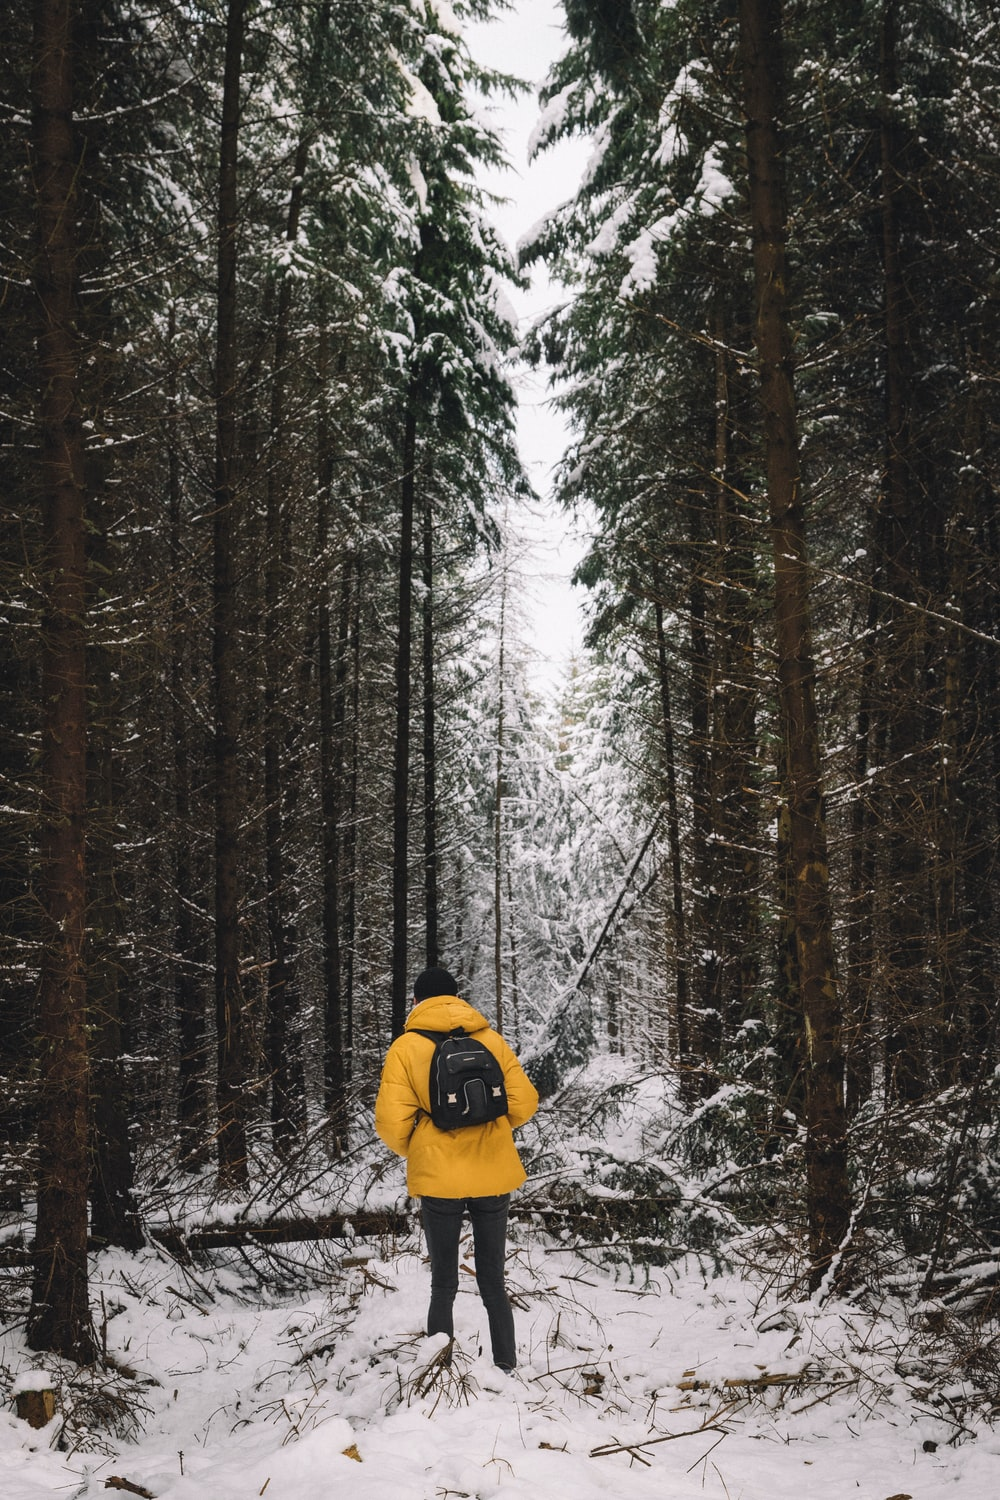 person in yellow bubble jacket and blue jeans in middle of trees